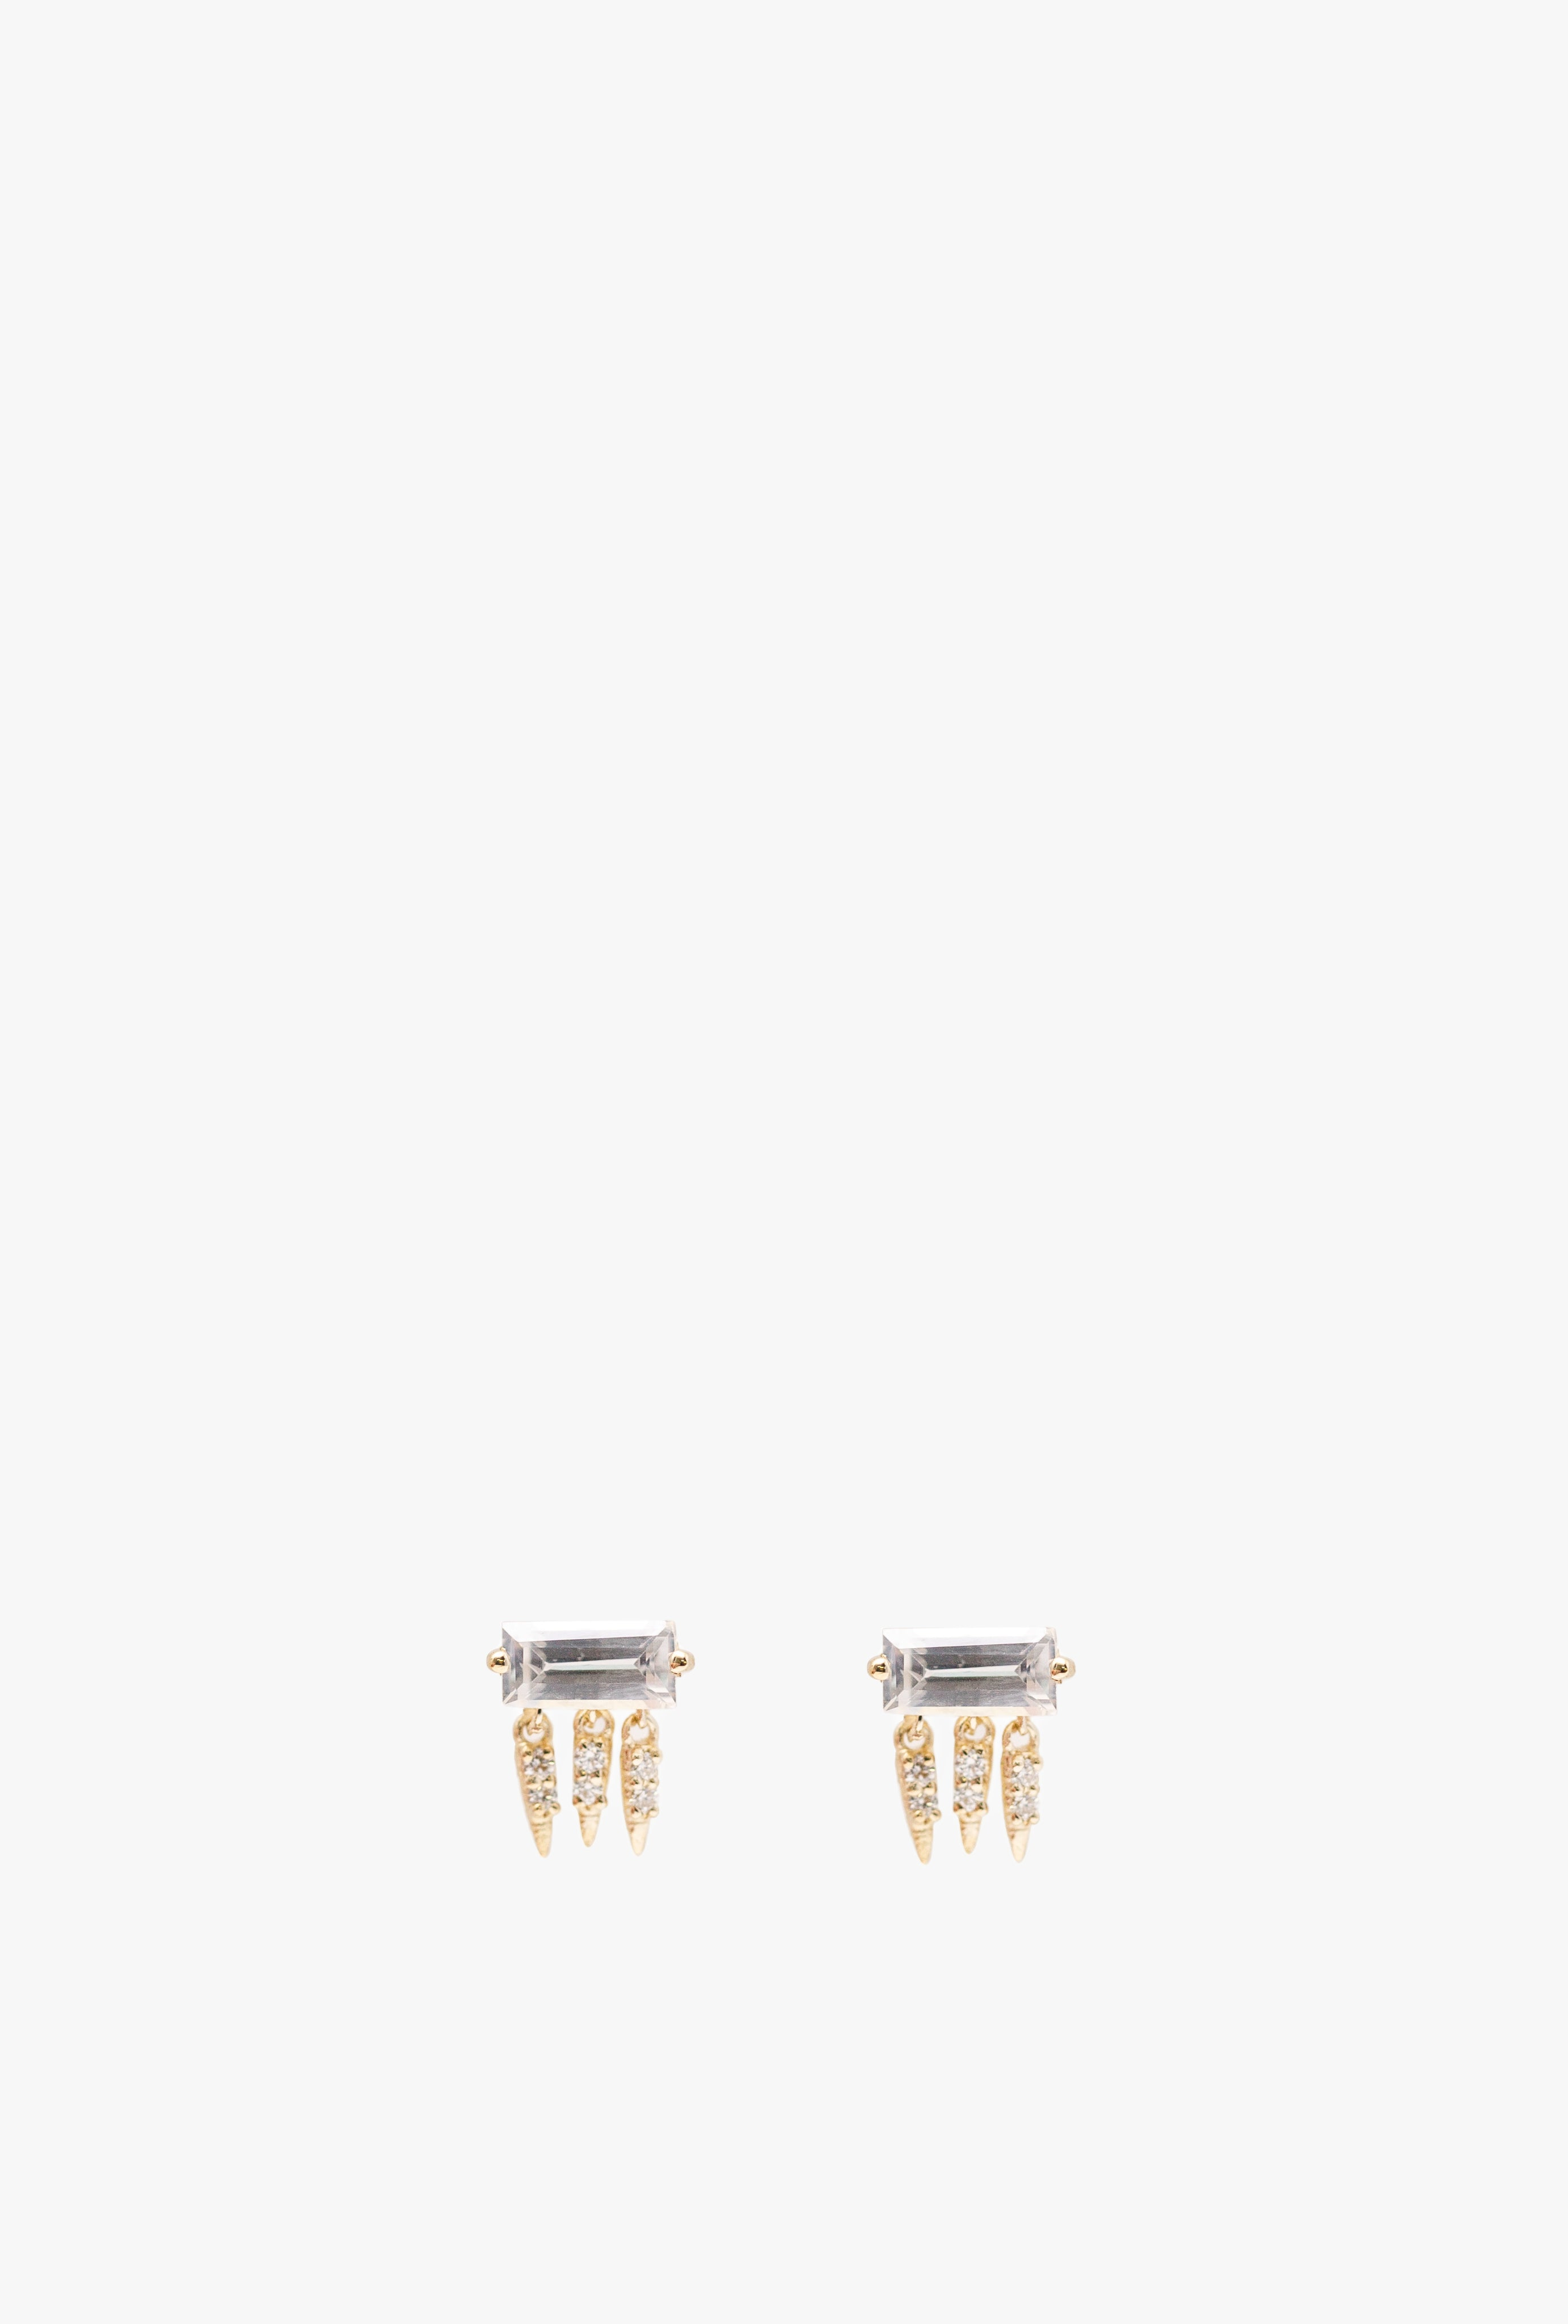 Spring Fling Earrings P